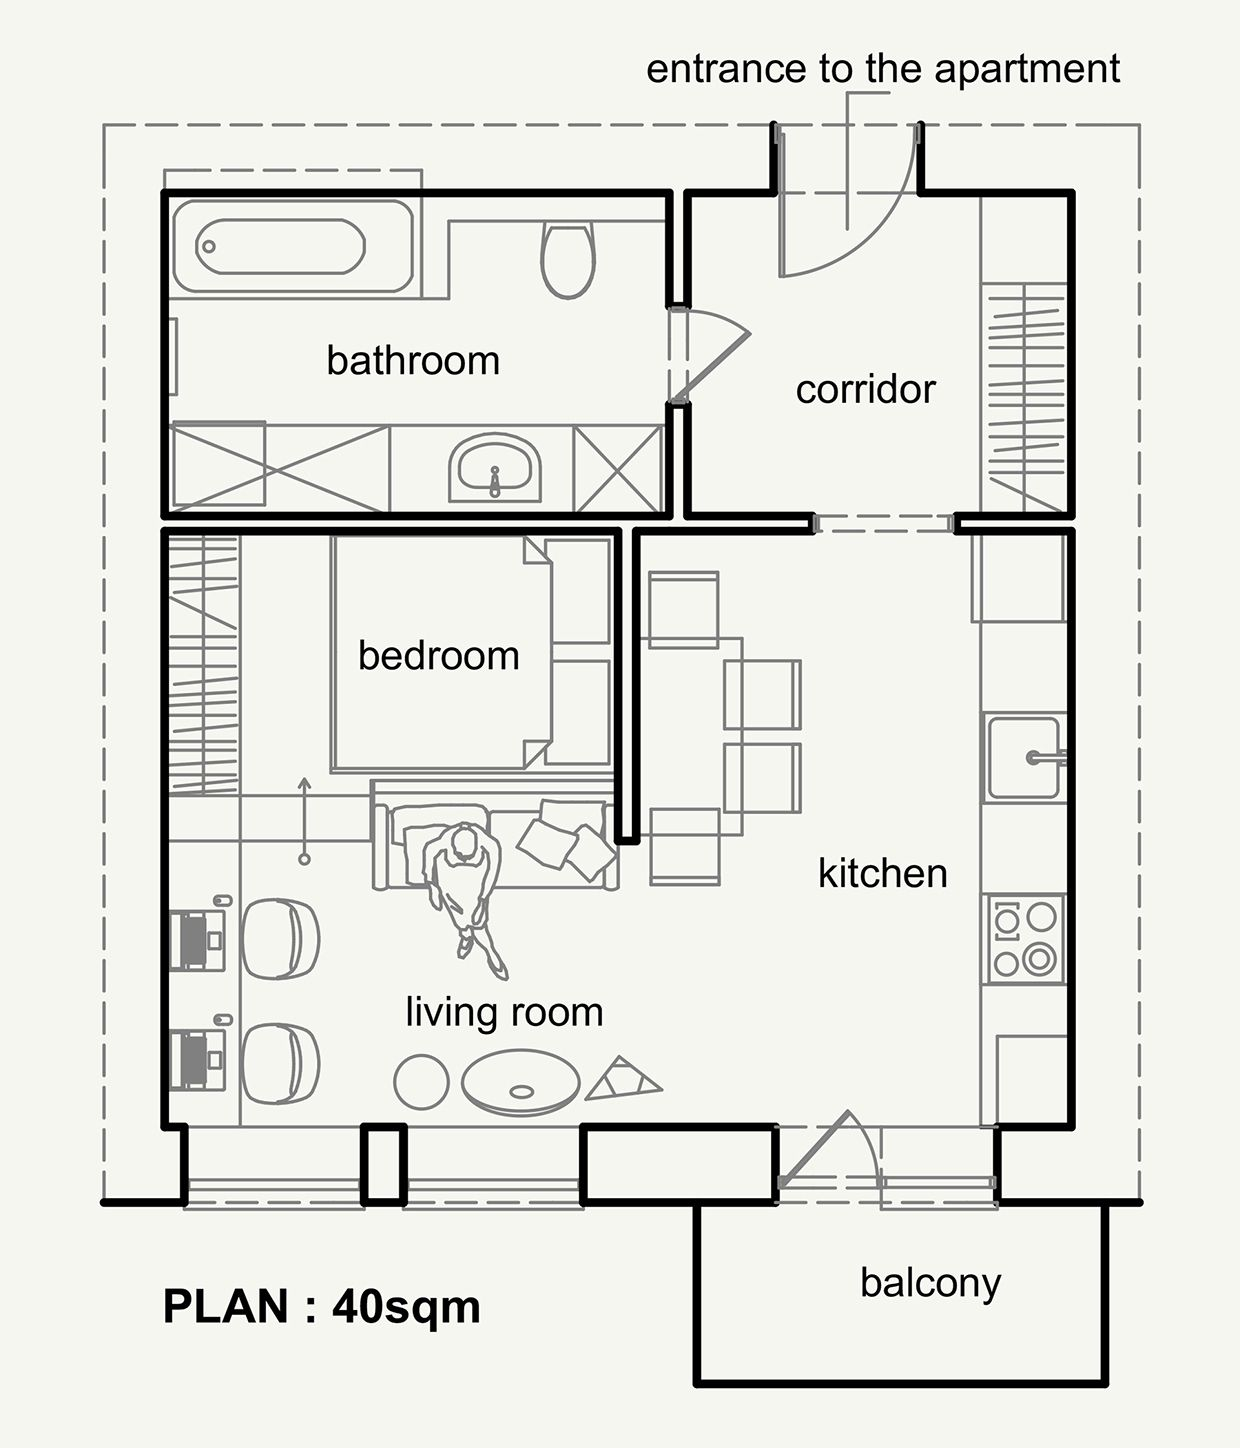 Living Small With Style 2 Beautiful Small Apartment Plans Under 500 Square Feet 50 Square Meters Small Apartment Plans Apartment Layout Apartment Plans